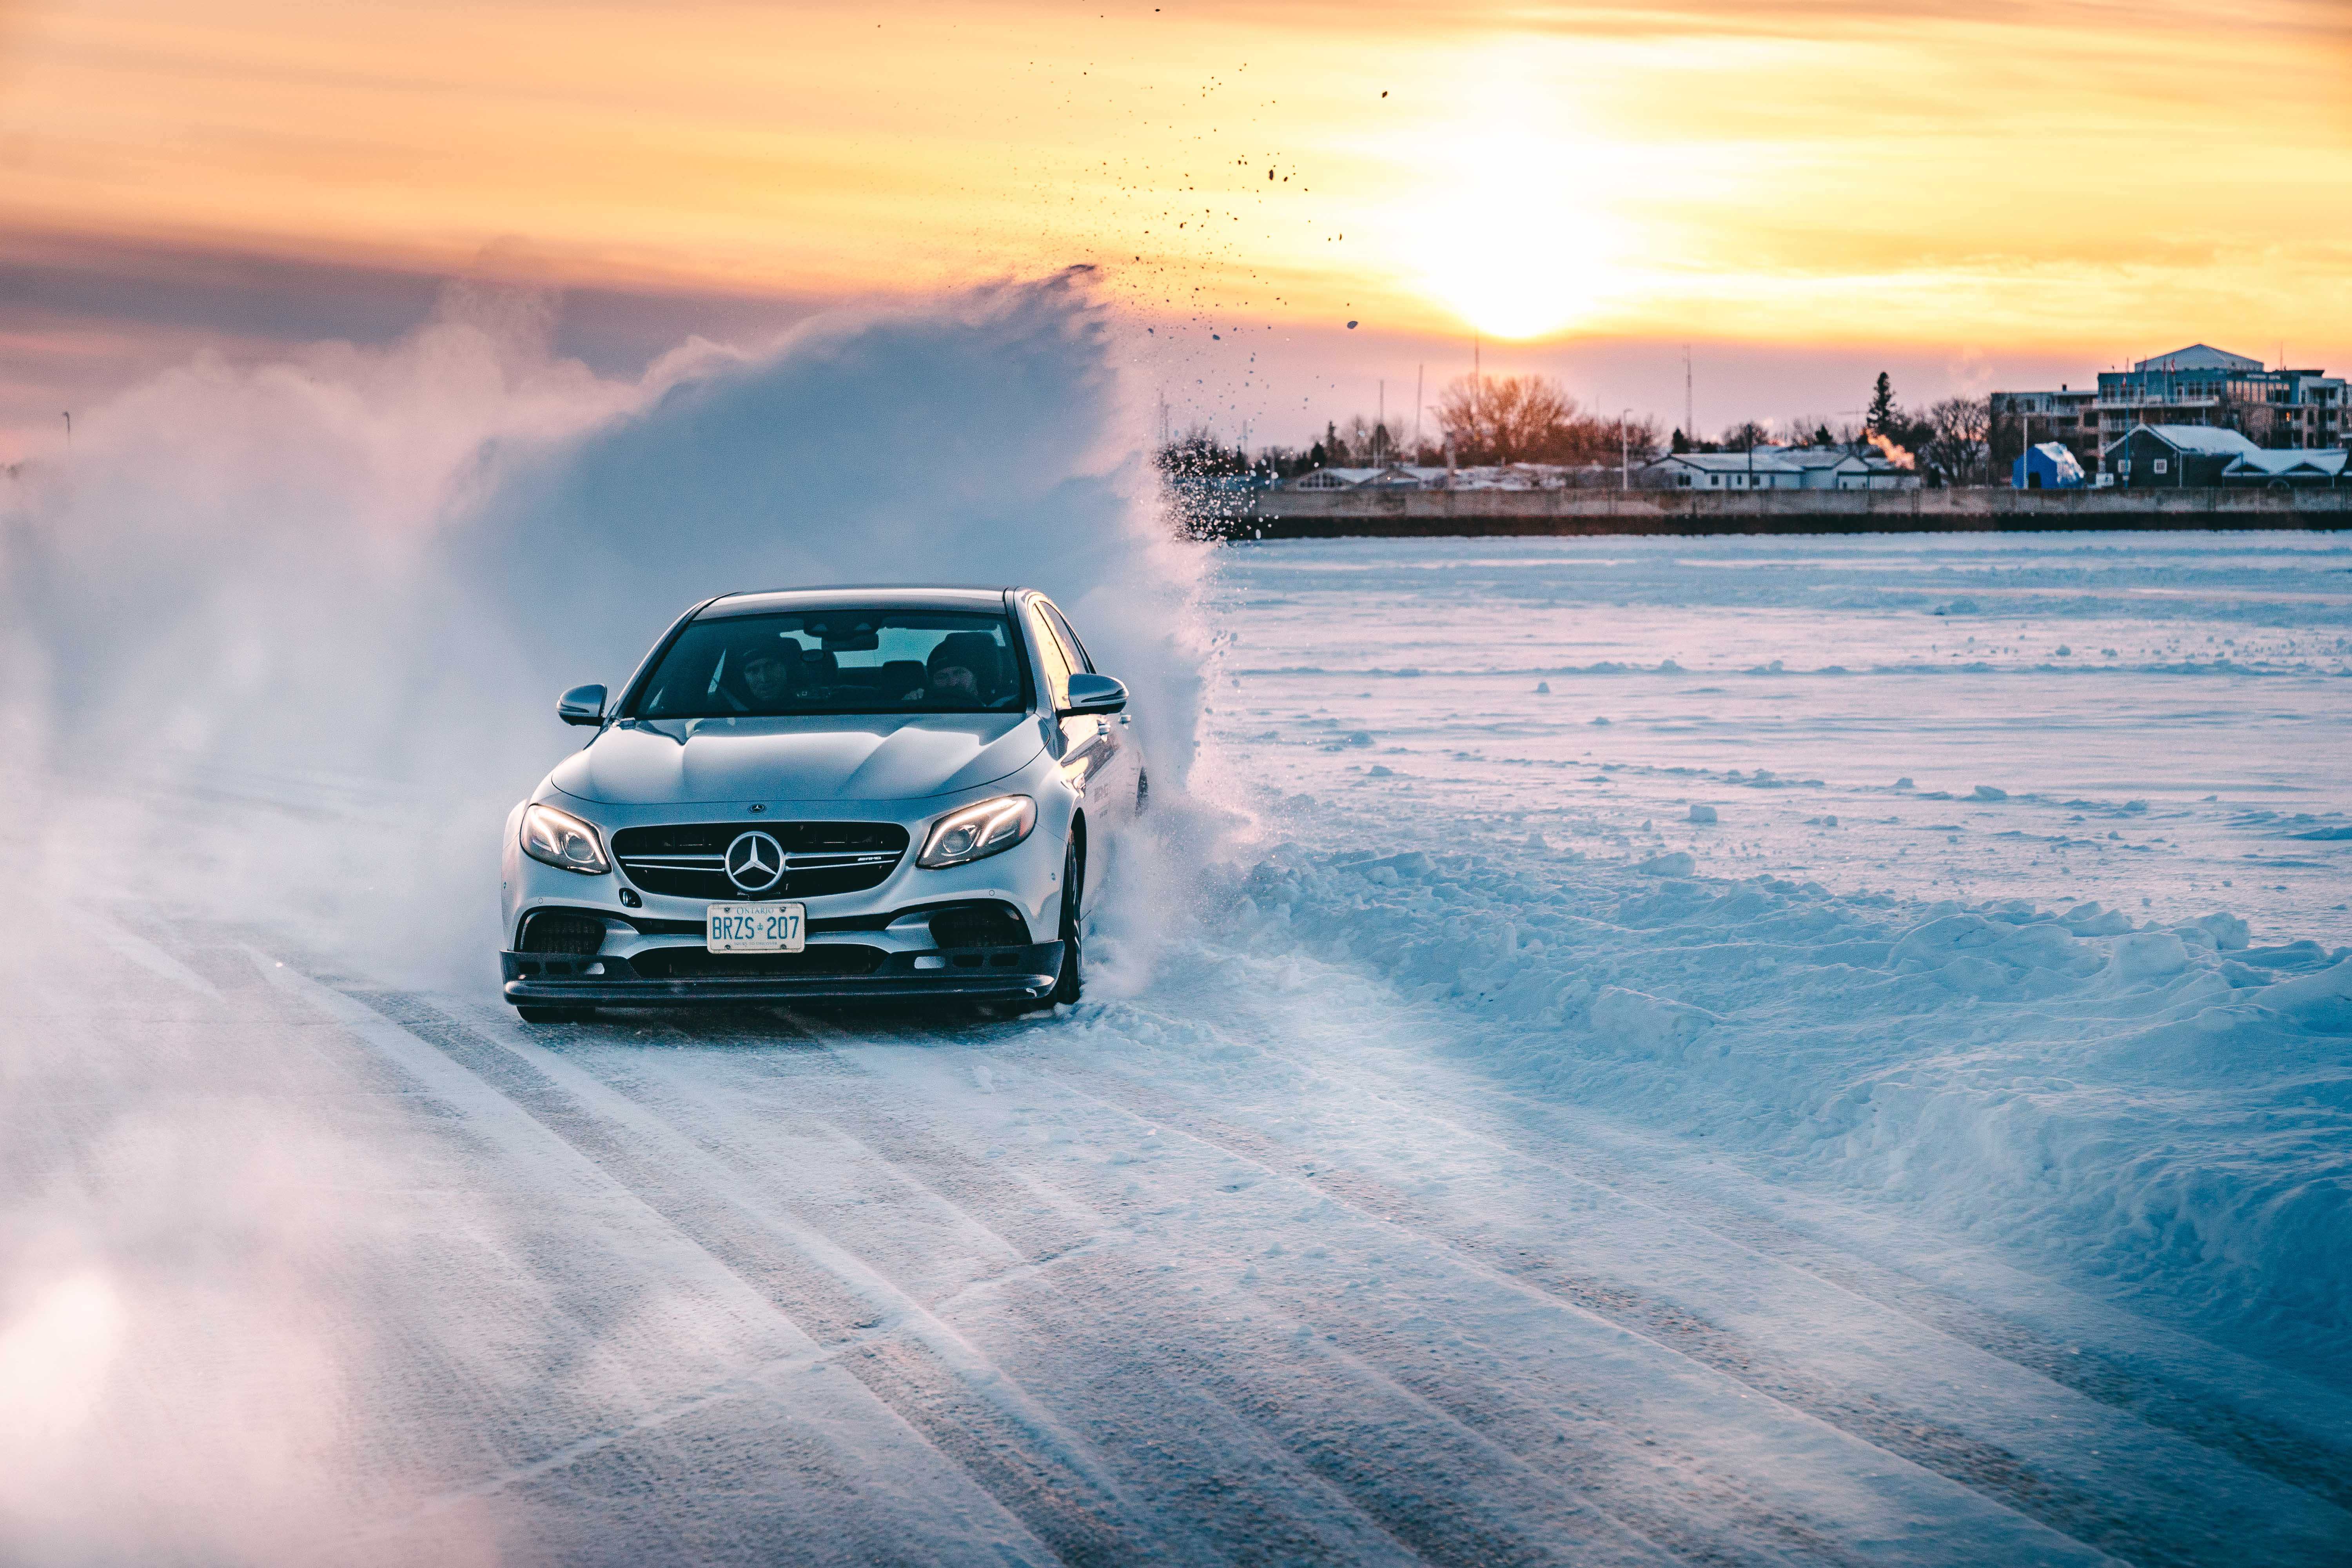 Amg Driving Academy >> Learning How to Drift Like a Pro on AMG's Frozen Racetrack ...